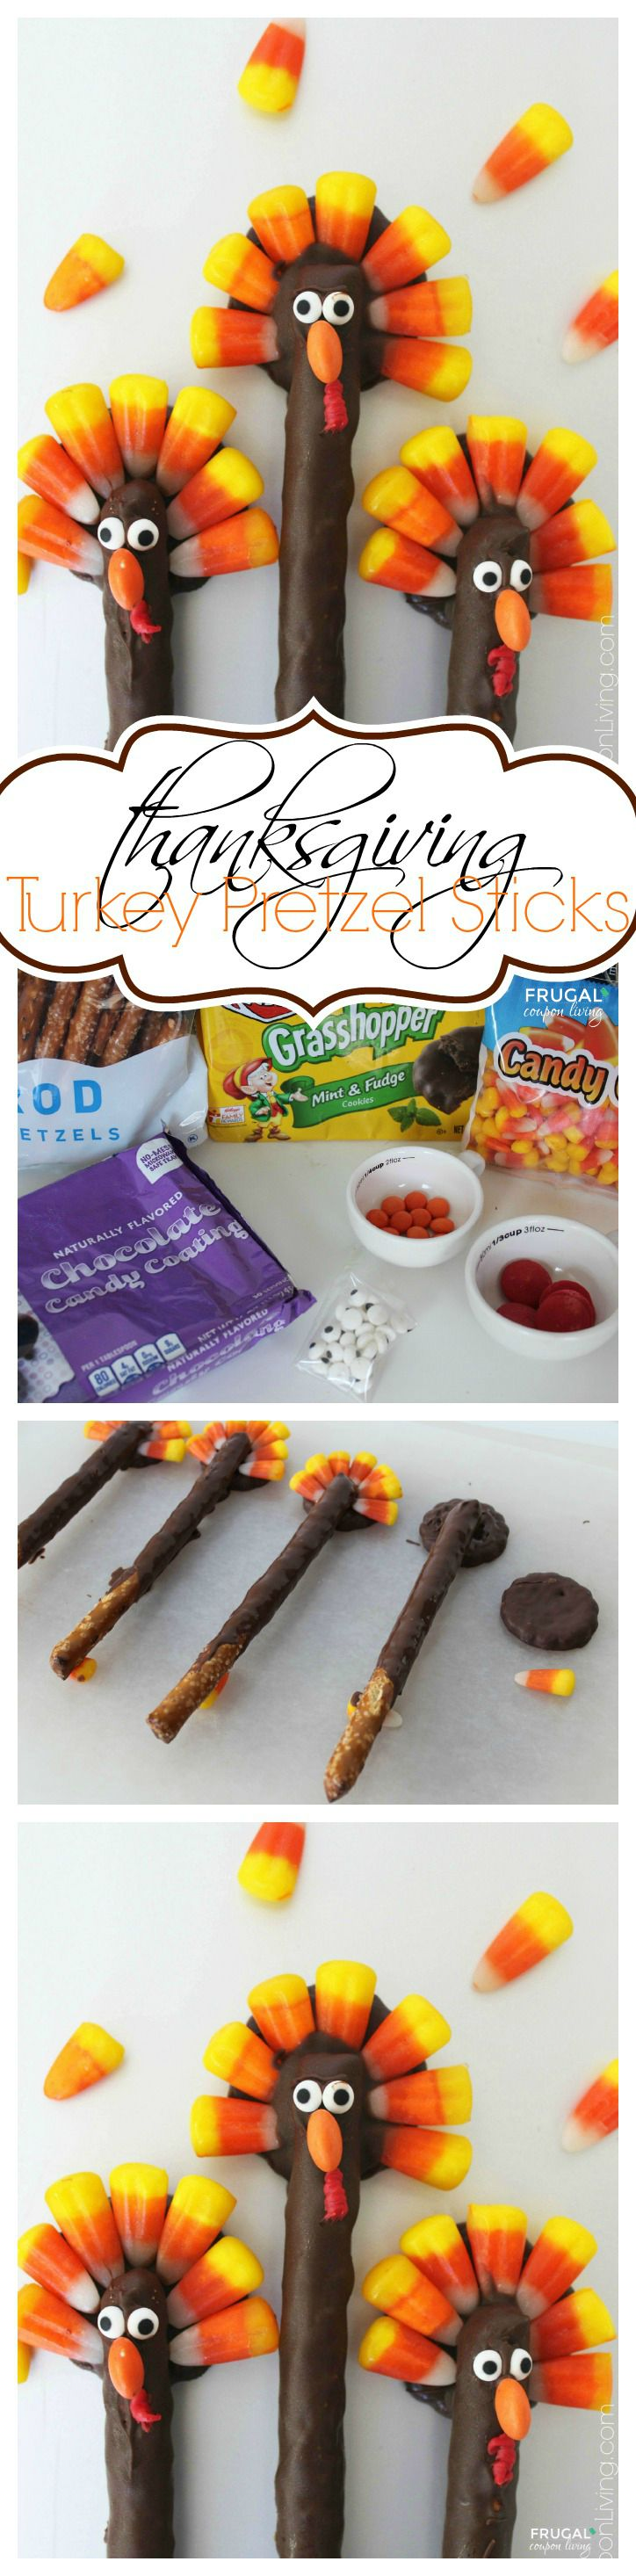 thanksgiving-turkey-pretzels-frugal-coupon-living-pinterest-Collage-url